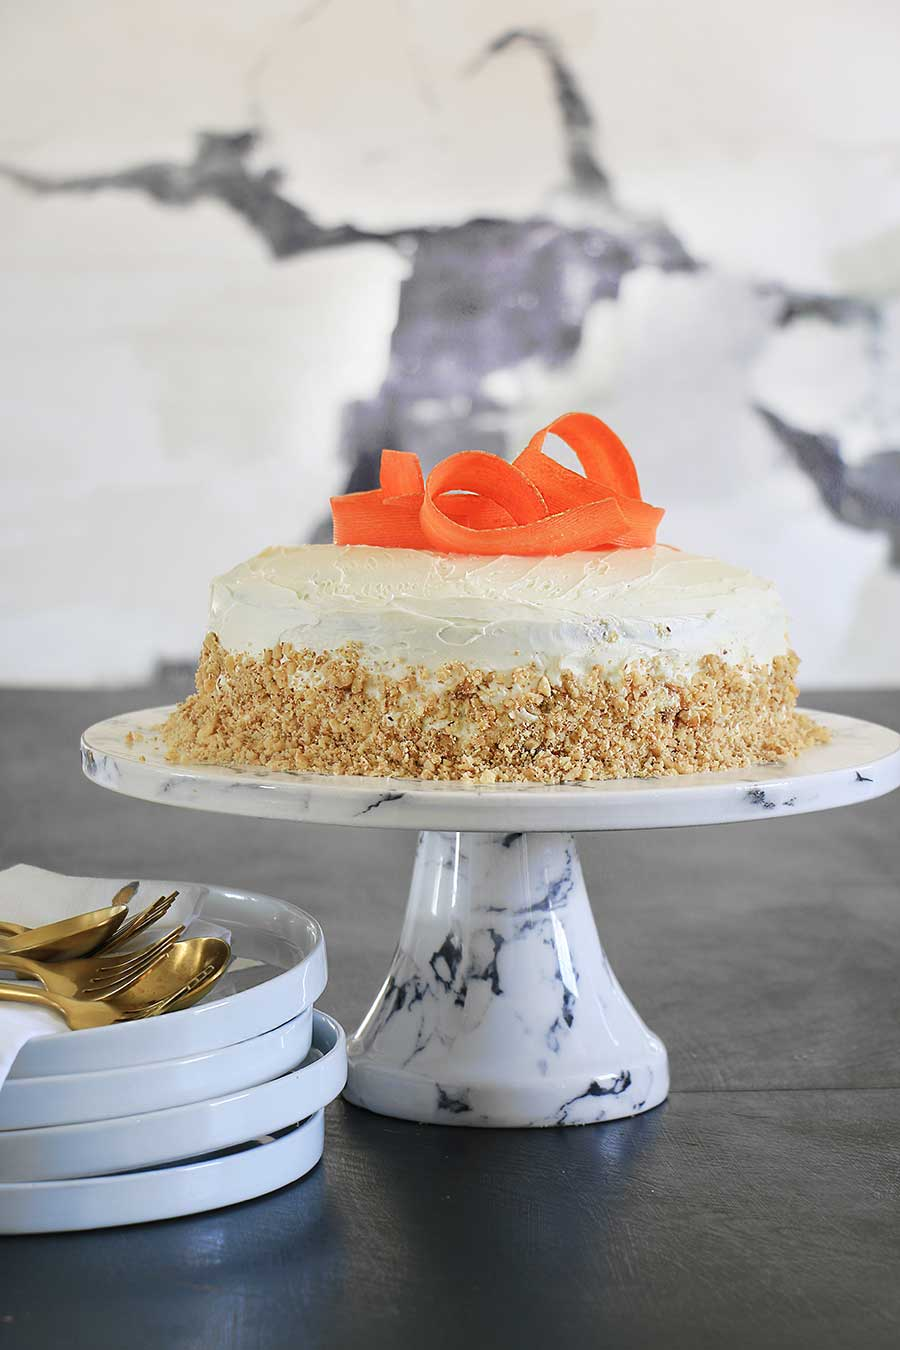 Carrot cake decorated with shaved carrots on top